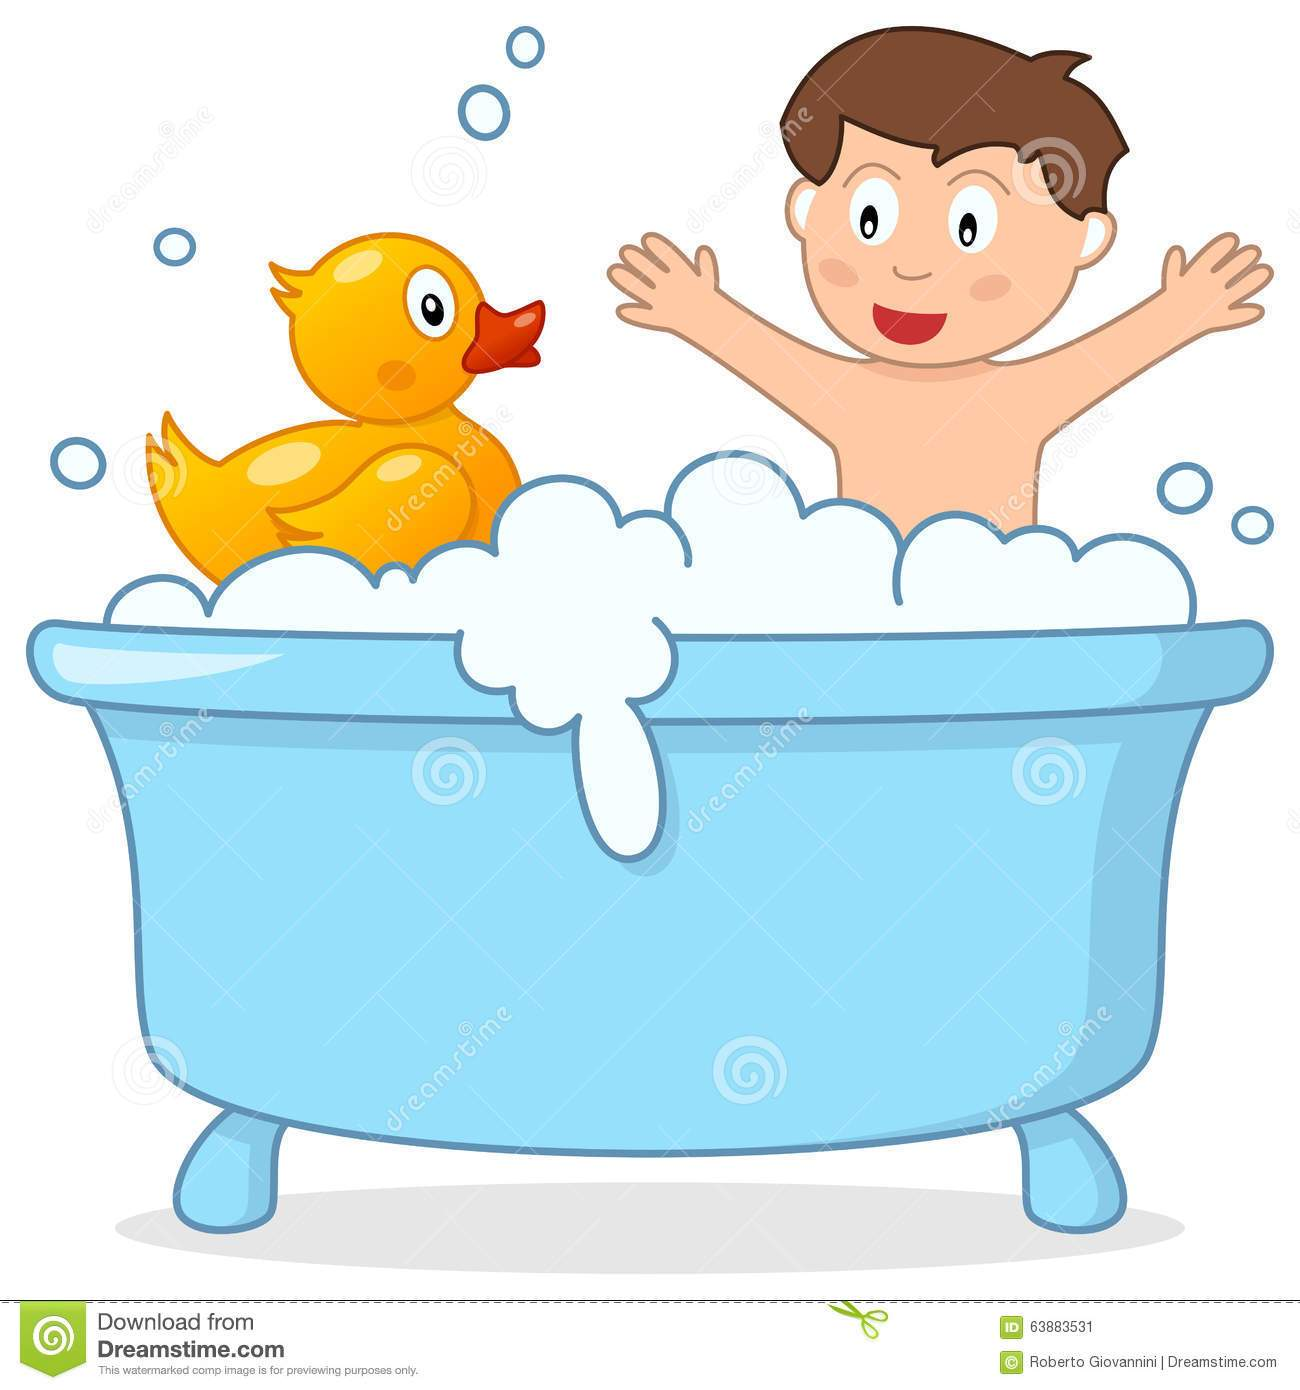 Bathing clipart png library stock Uses of water for bathing clipart 5 » Clipart Portal png library stock